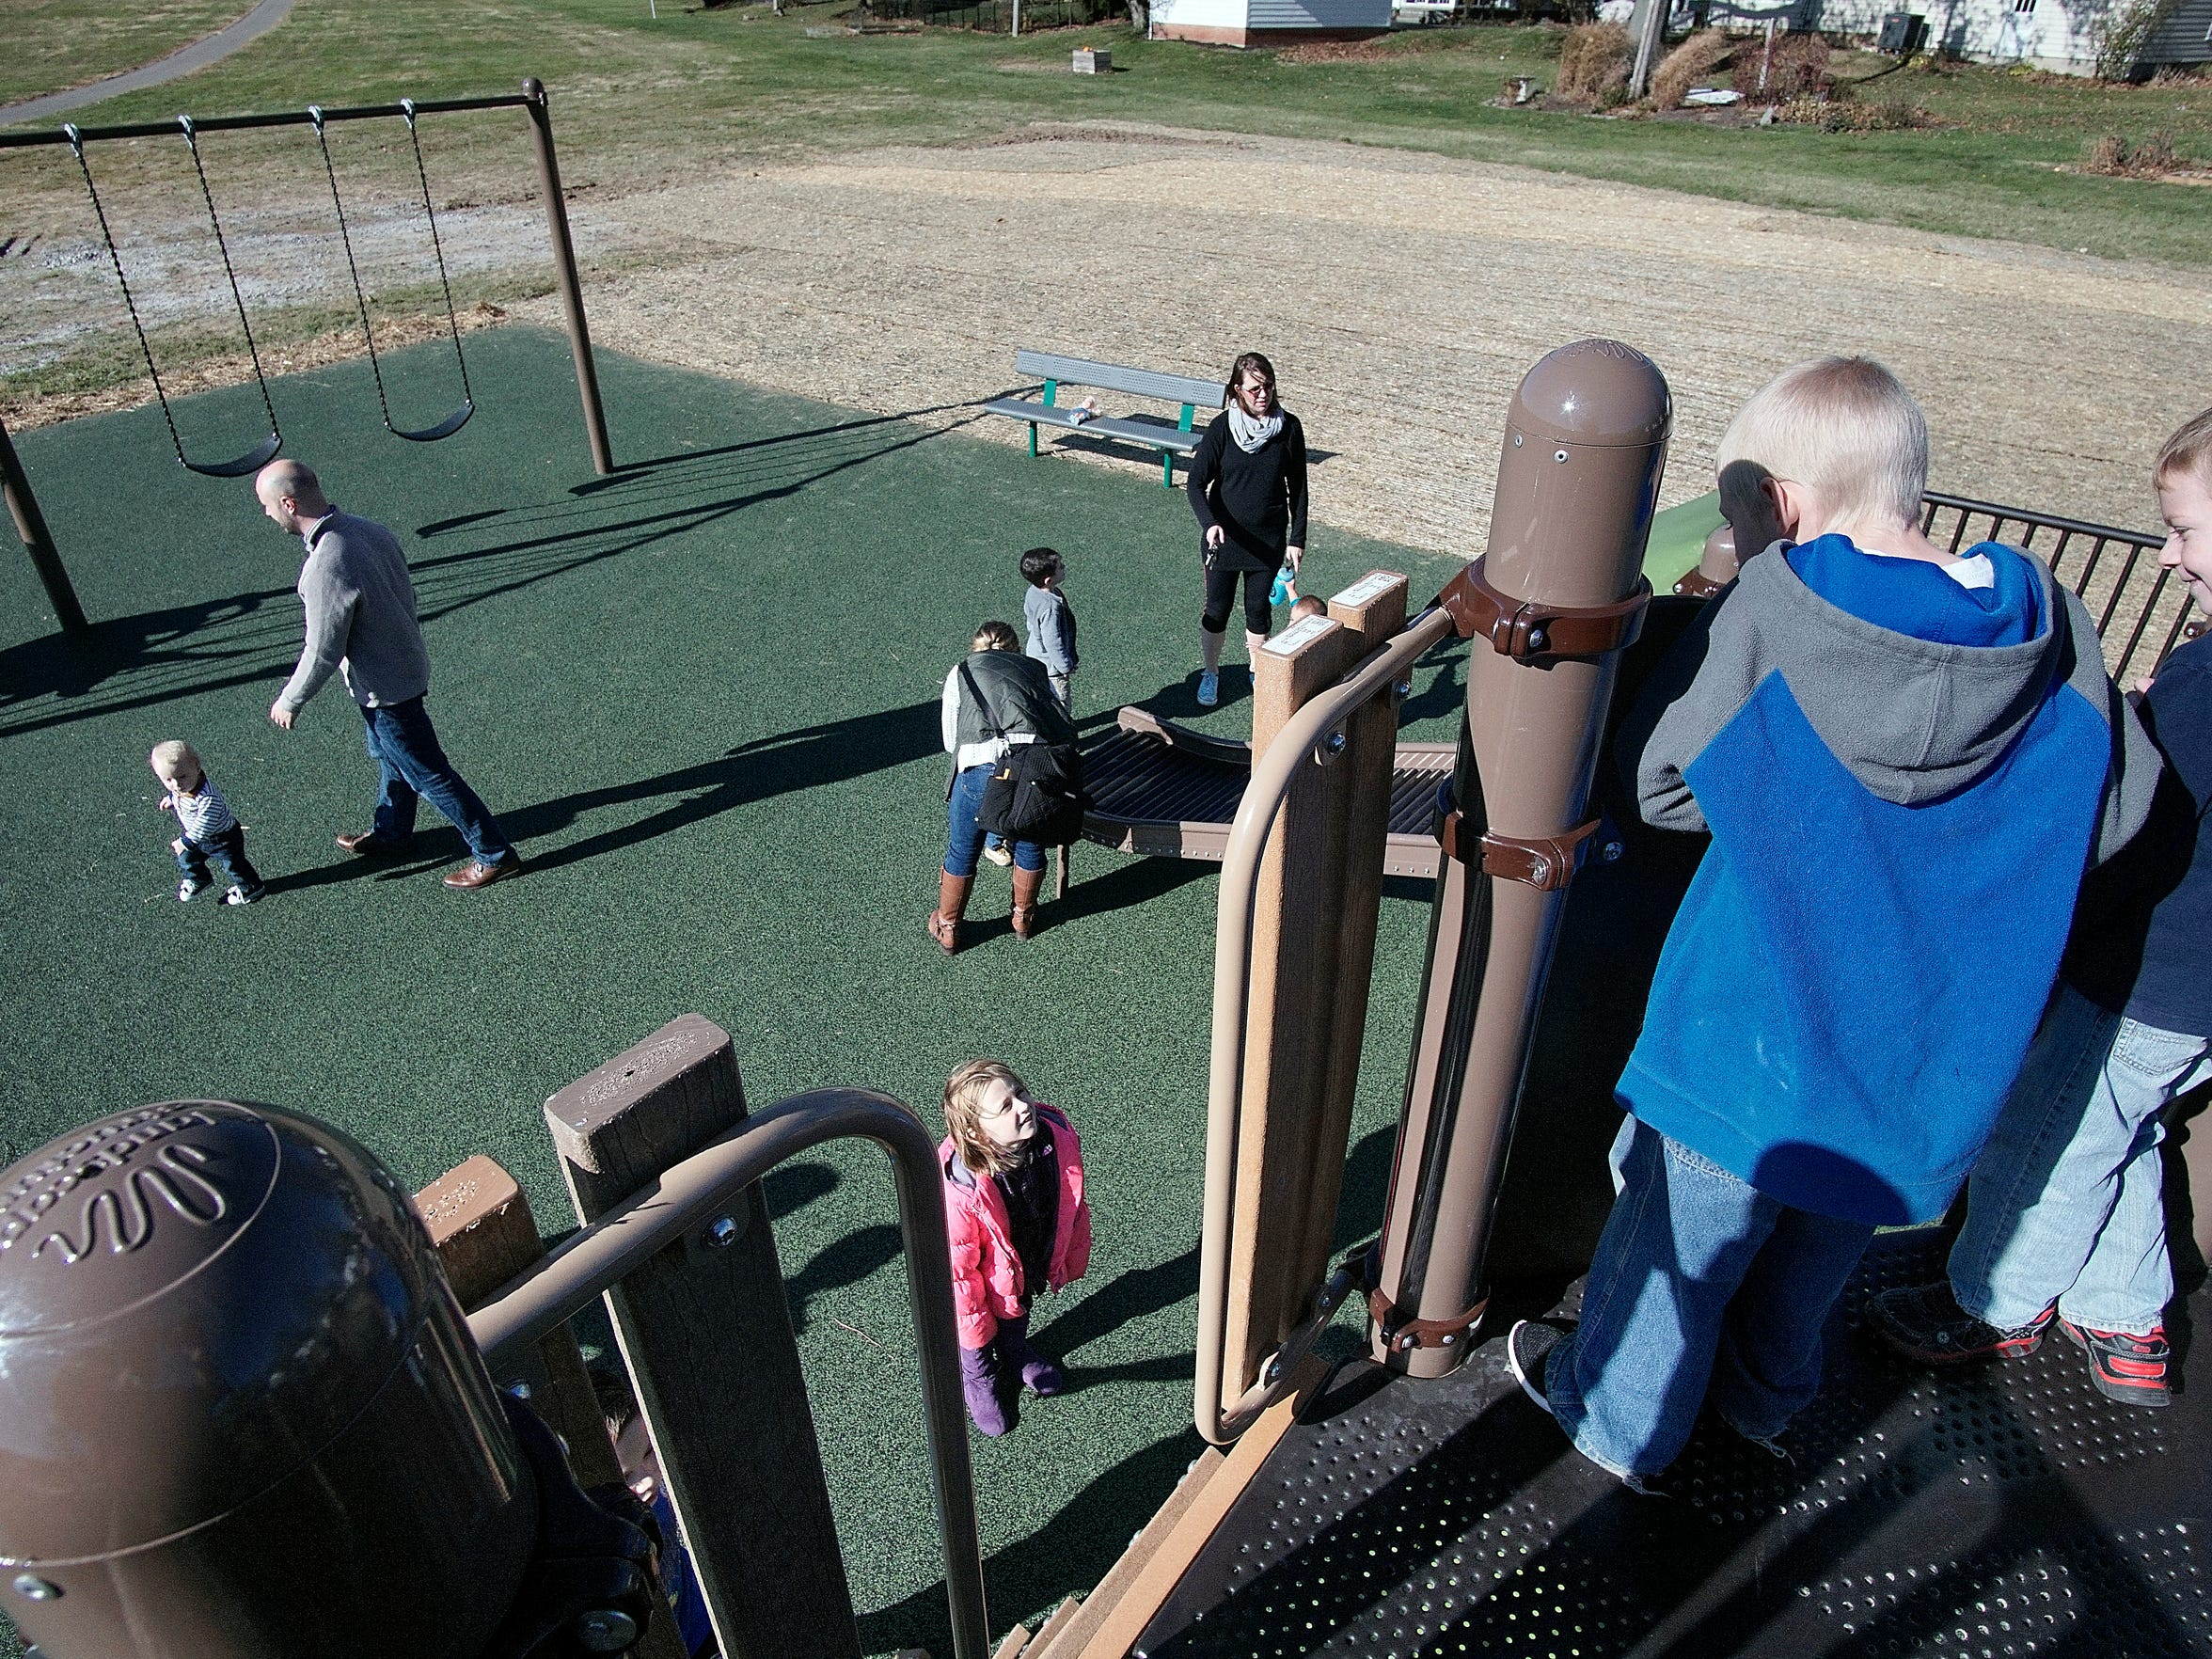 Kids play Sunday morning in a new playground designed to be inclusive for kids with developmental disabilities.